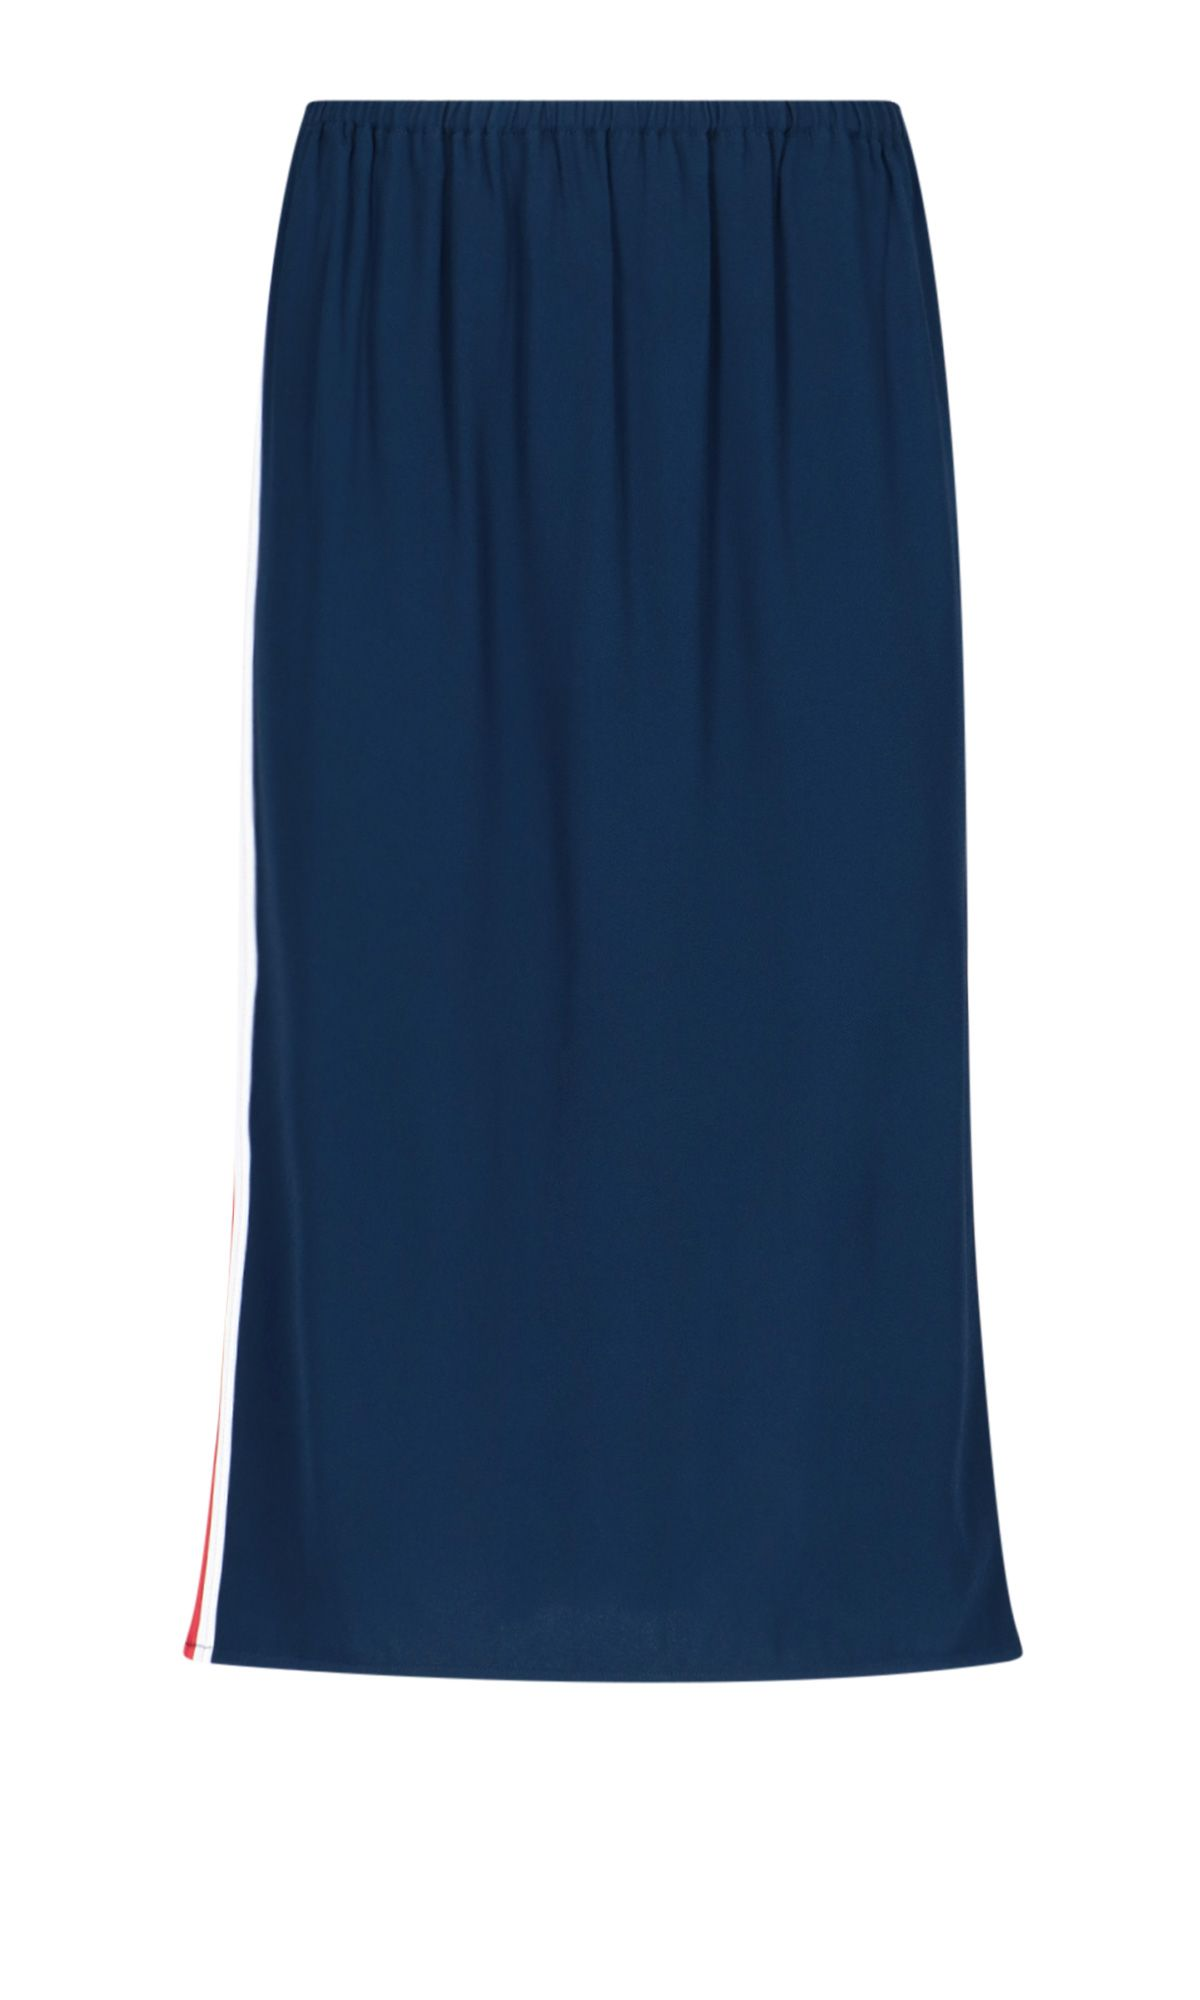 Marni MARNI WOMEN'S BLUE COTTON SKIRT